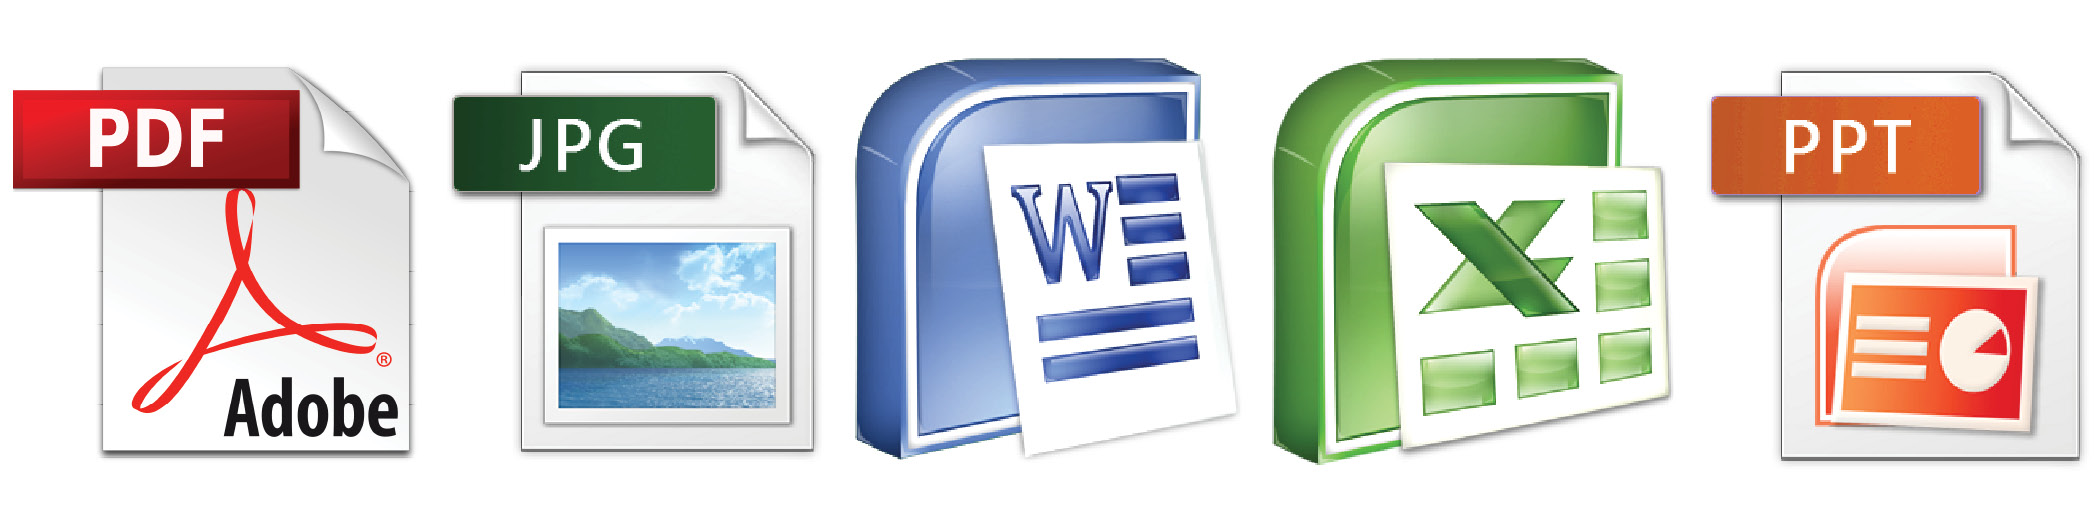 pdf learning word excel ppt